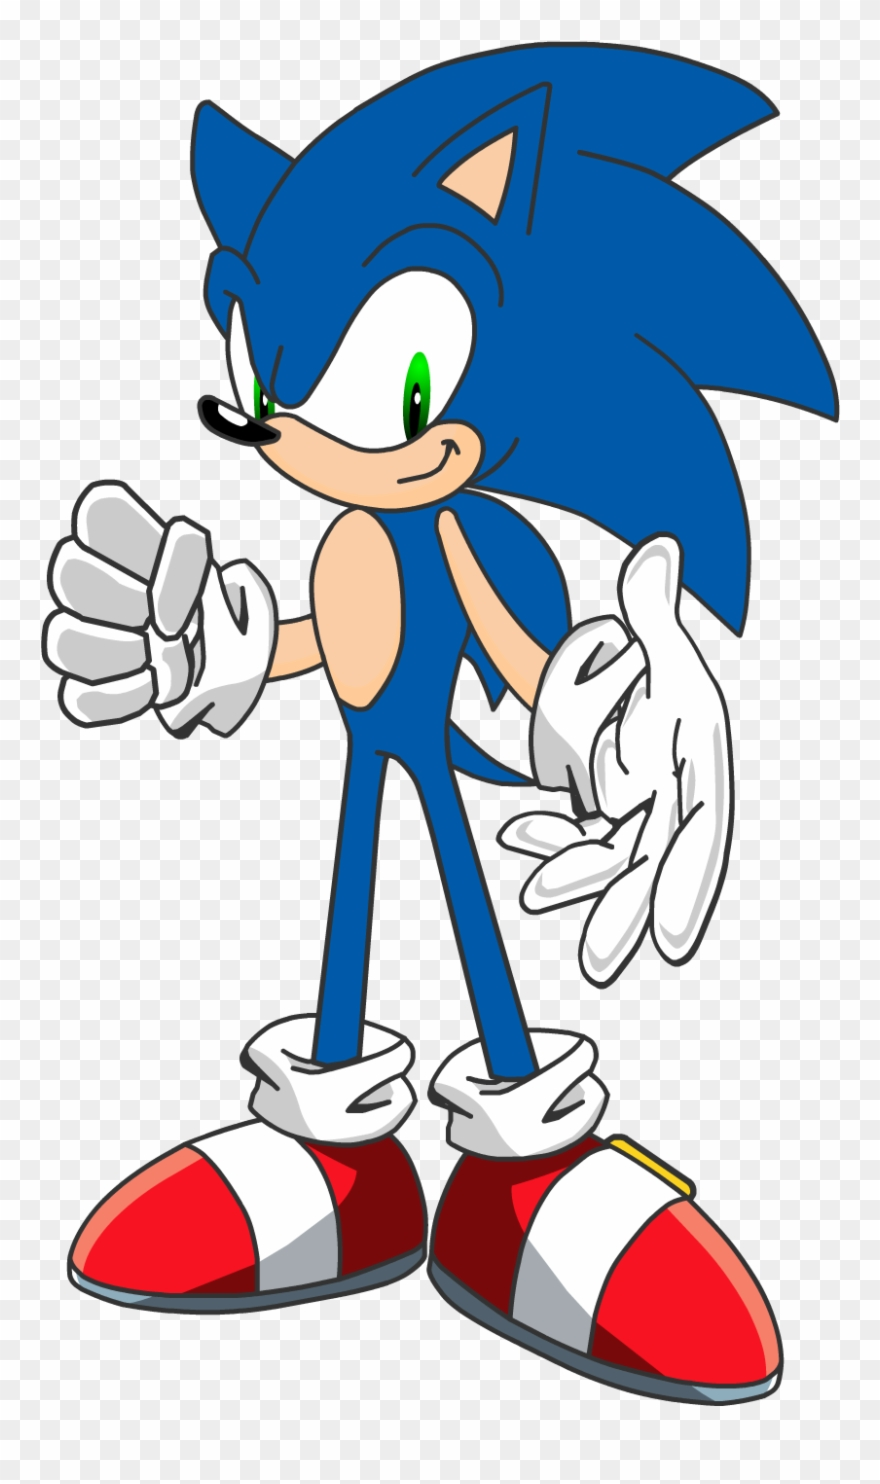 Sonic The Hedgehog Clipart Ring.